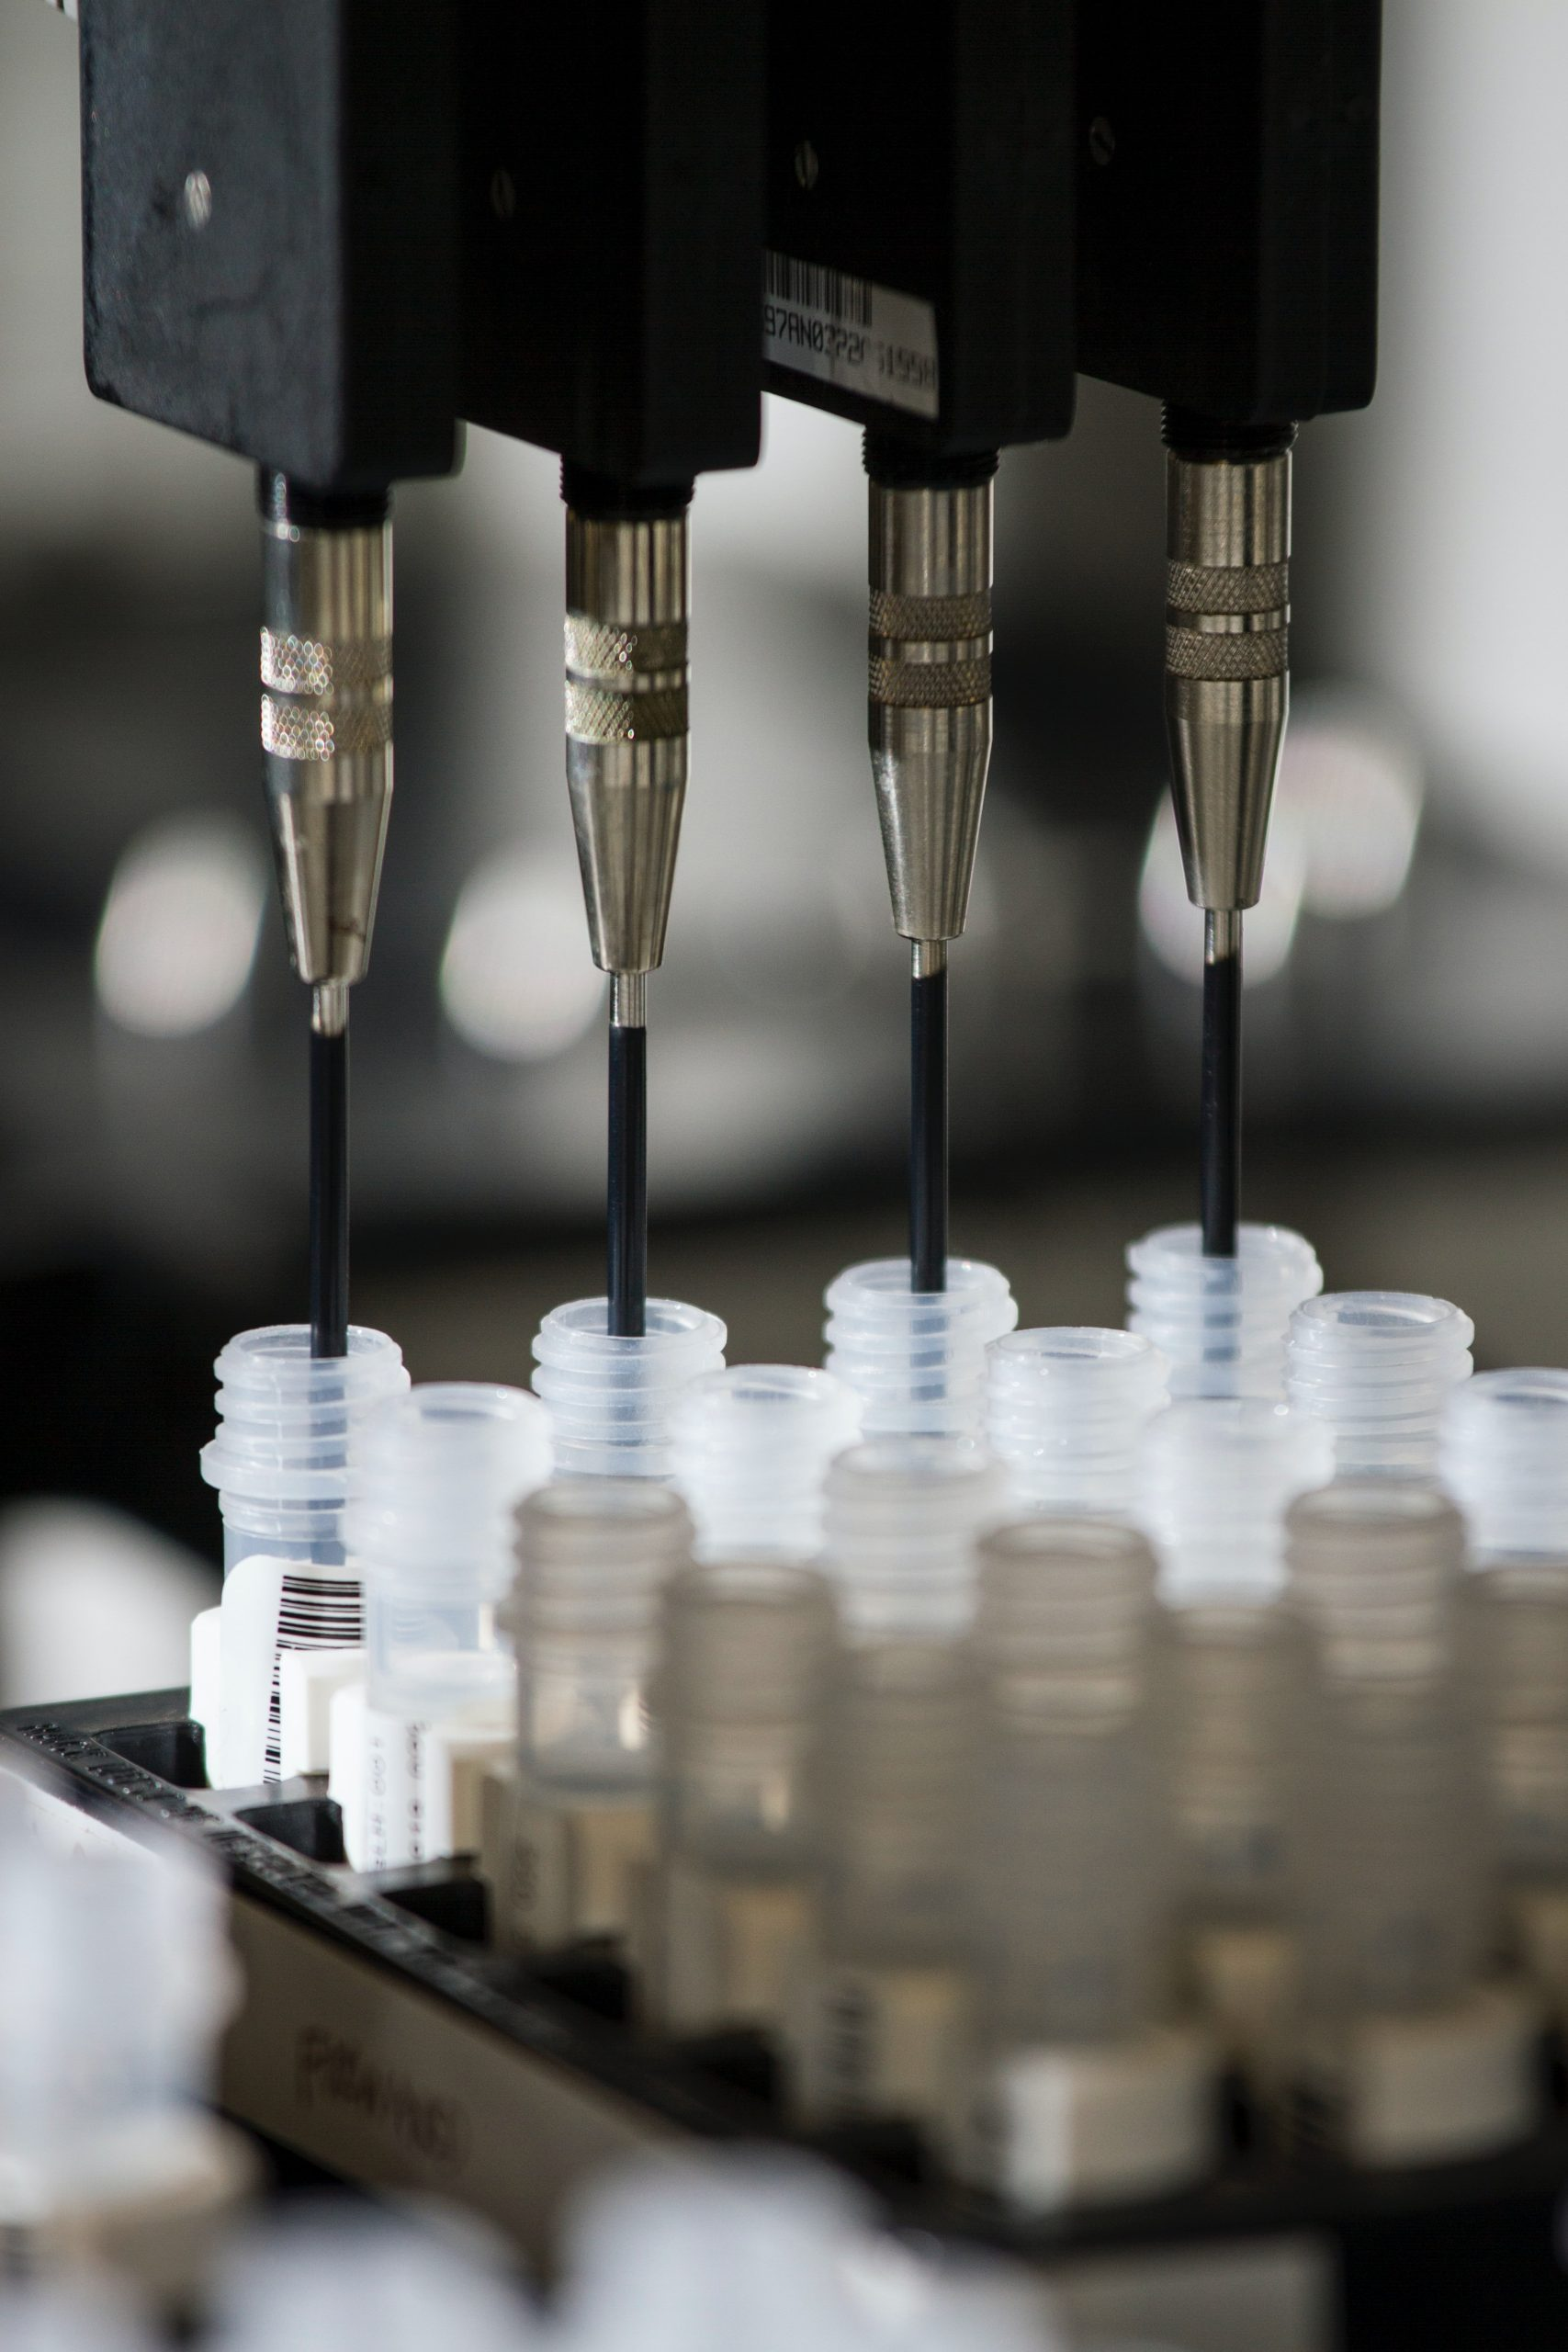 Quality management for the needs of medical device industry